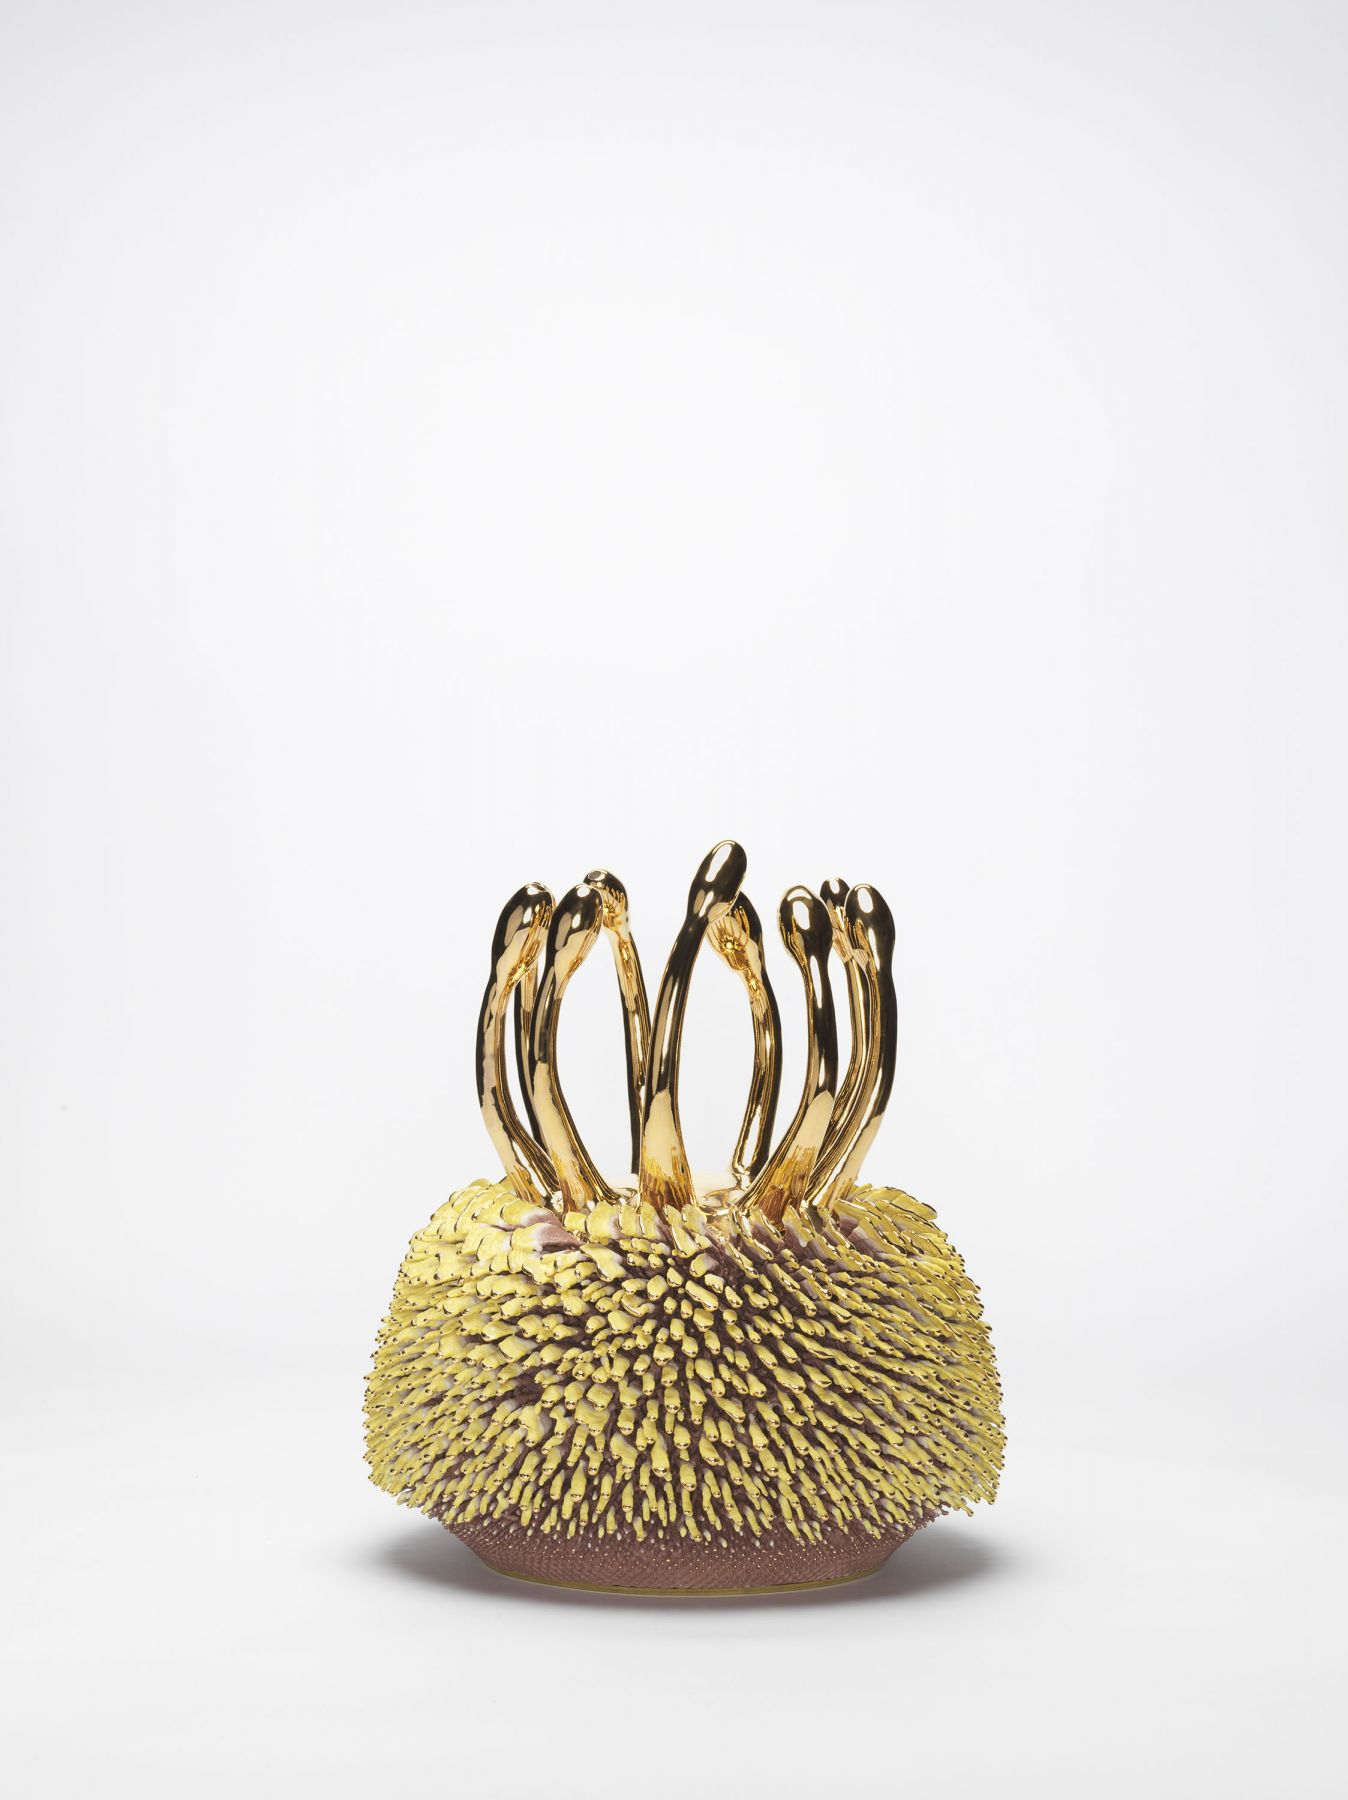 Haas Brothers Create Alien Like Objets For Frieze Art Fair (1) haas brothers Haas Brothers Create Alien Like Objets For Frieze Art Fair Haas Brothers Create Alien Like Objets For Frieze Art Fair 1